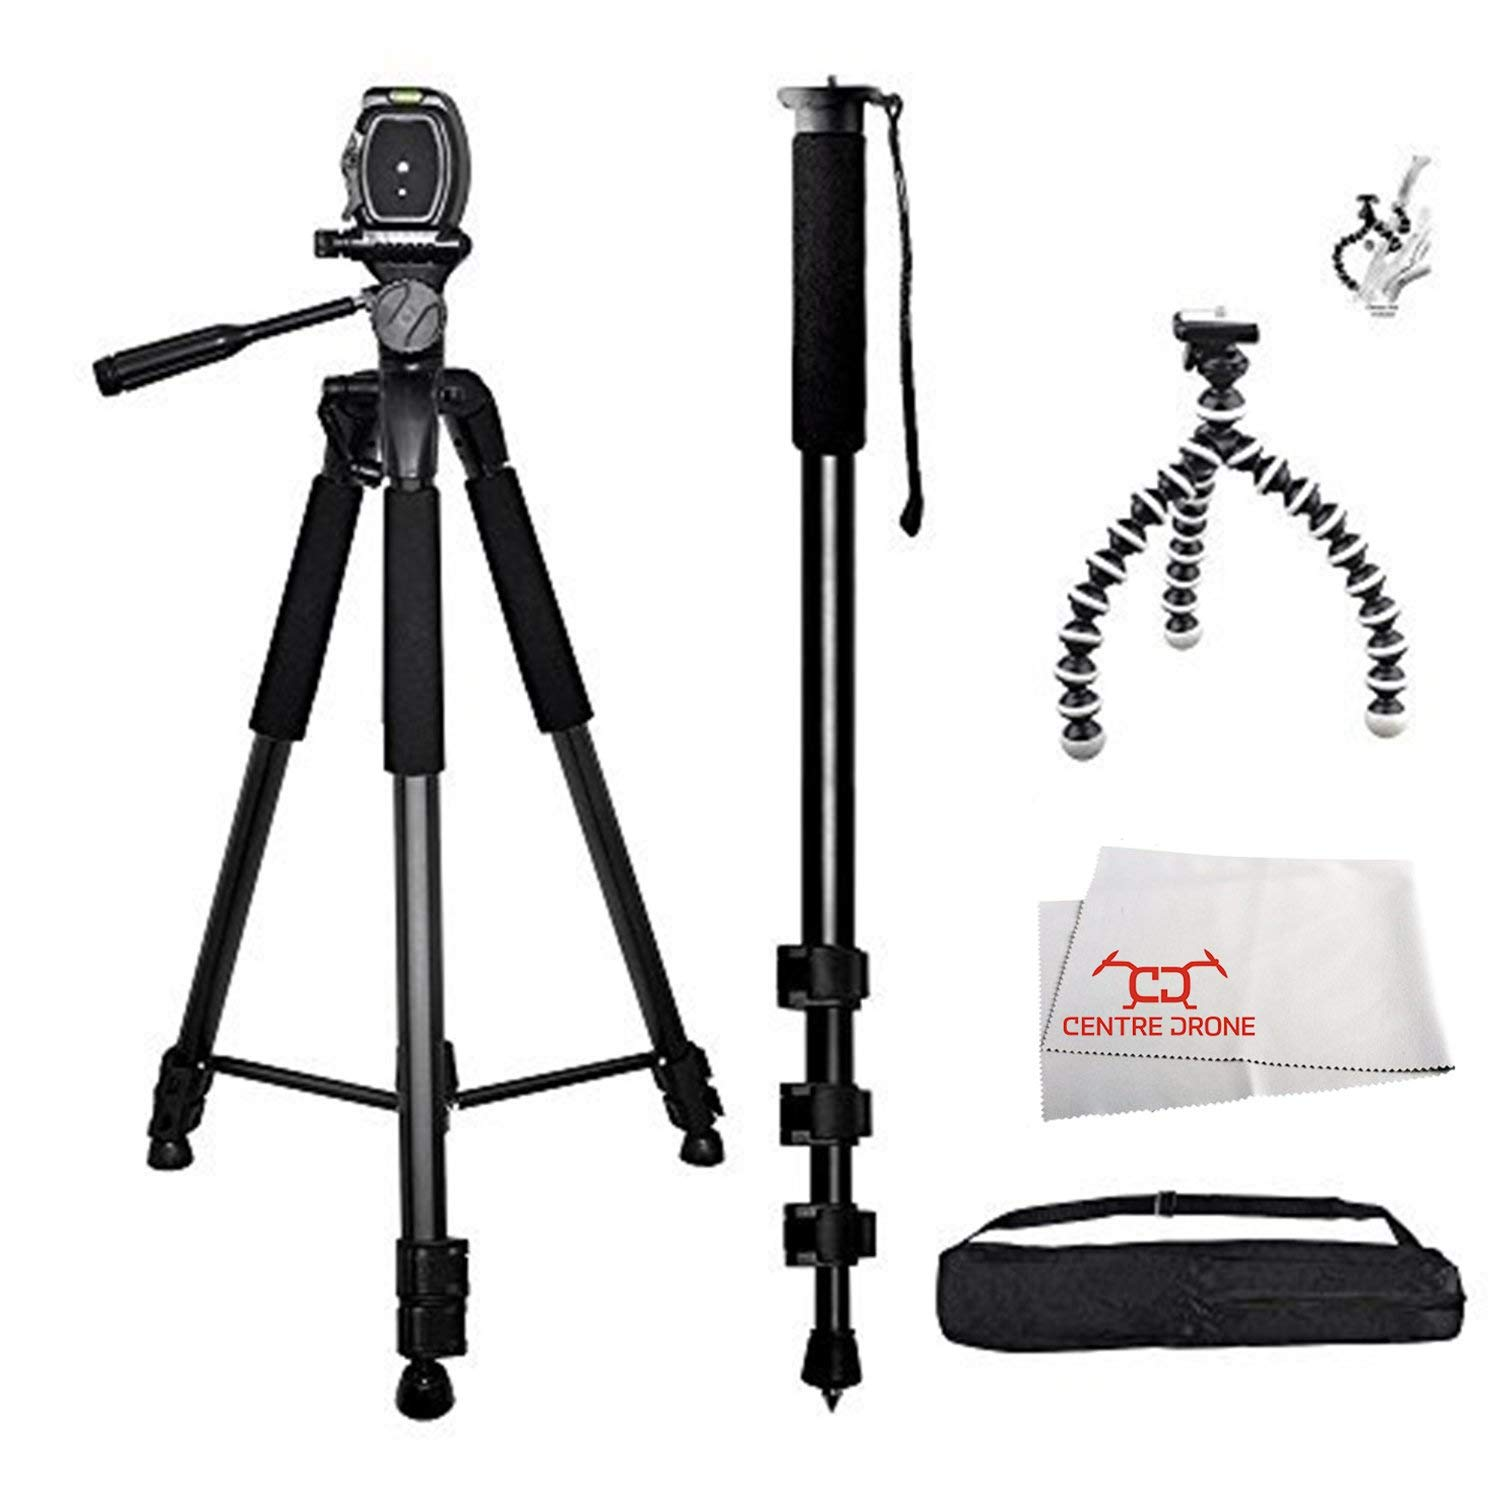 3 Piece Best Value Tripod Pack